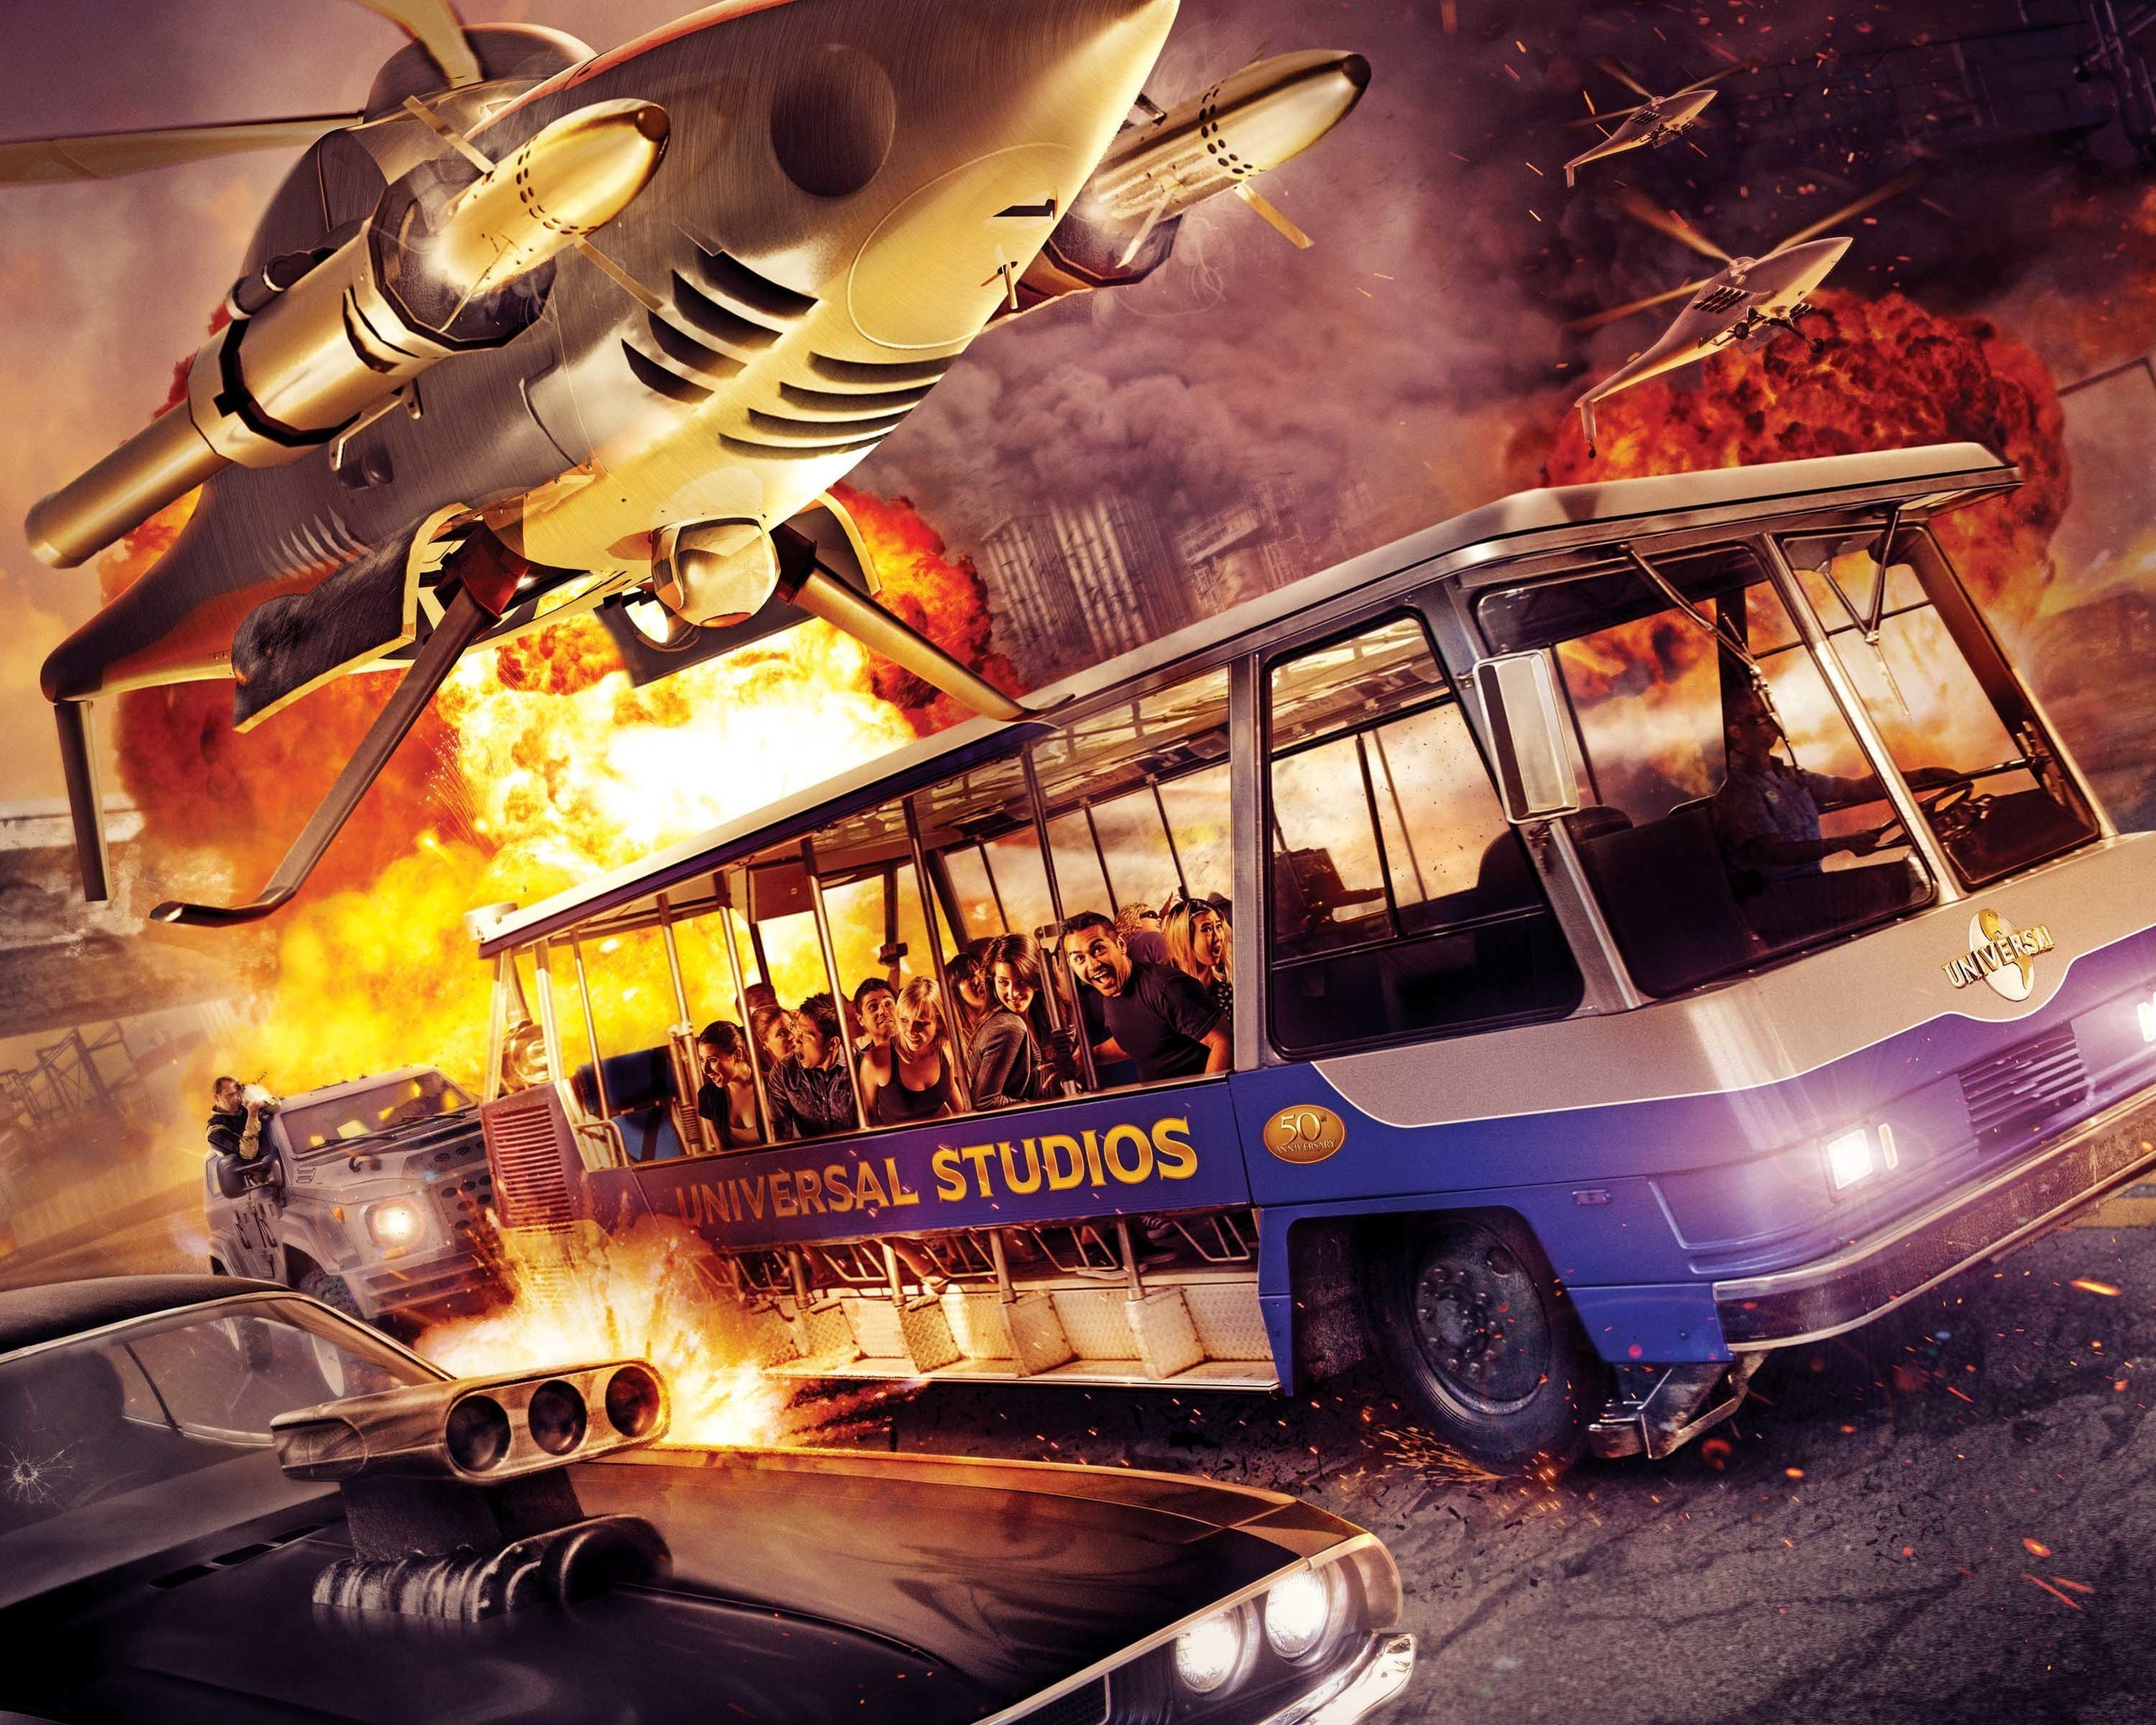 """Universal Studios Hollywood shifts into high gear with the debut of an innovative, national 30-second commercial for its summer launch of """"Fast & Furious-Supercharged"""" thrill ride during NBC's Super Bowl Pre-Game coverage on Sunday, February 1, 2015."""